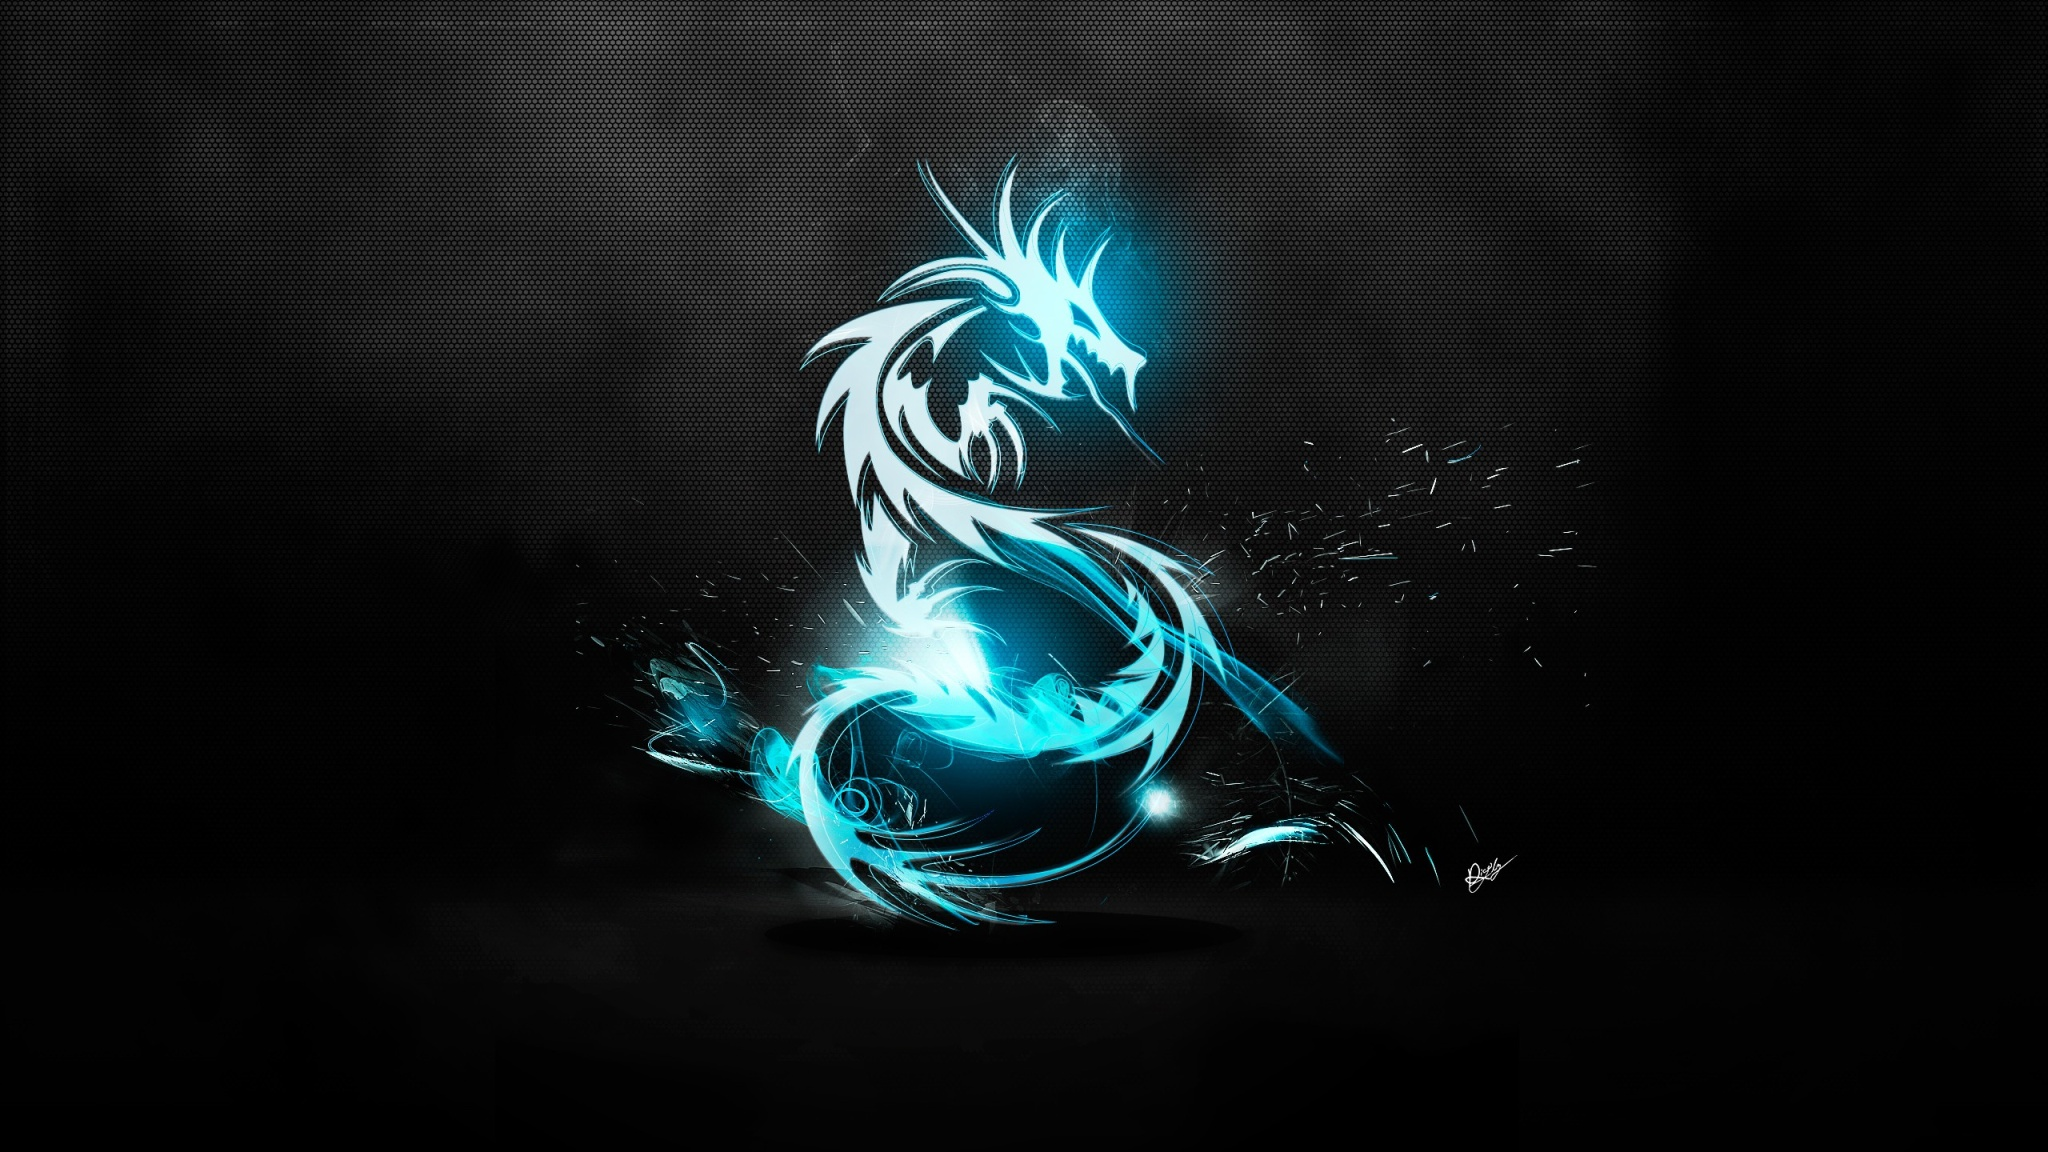 Blue Dragon Logo High Definition Wallpaper 2048x1152